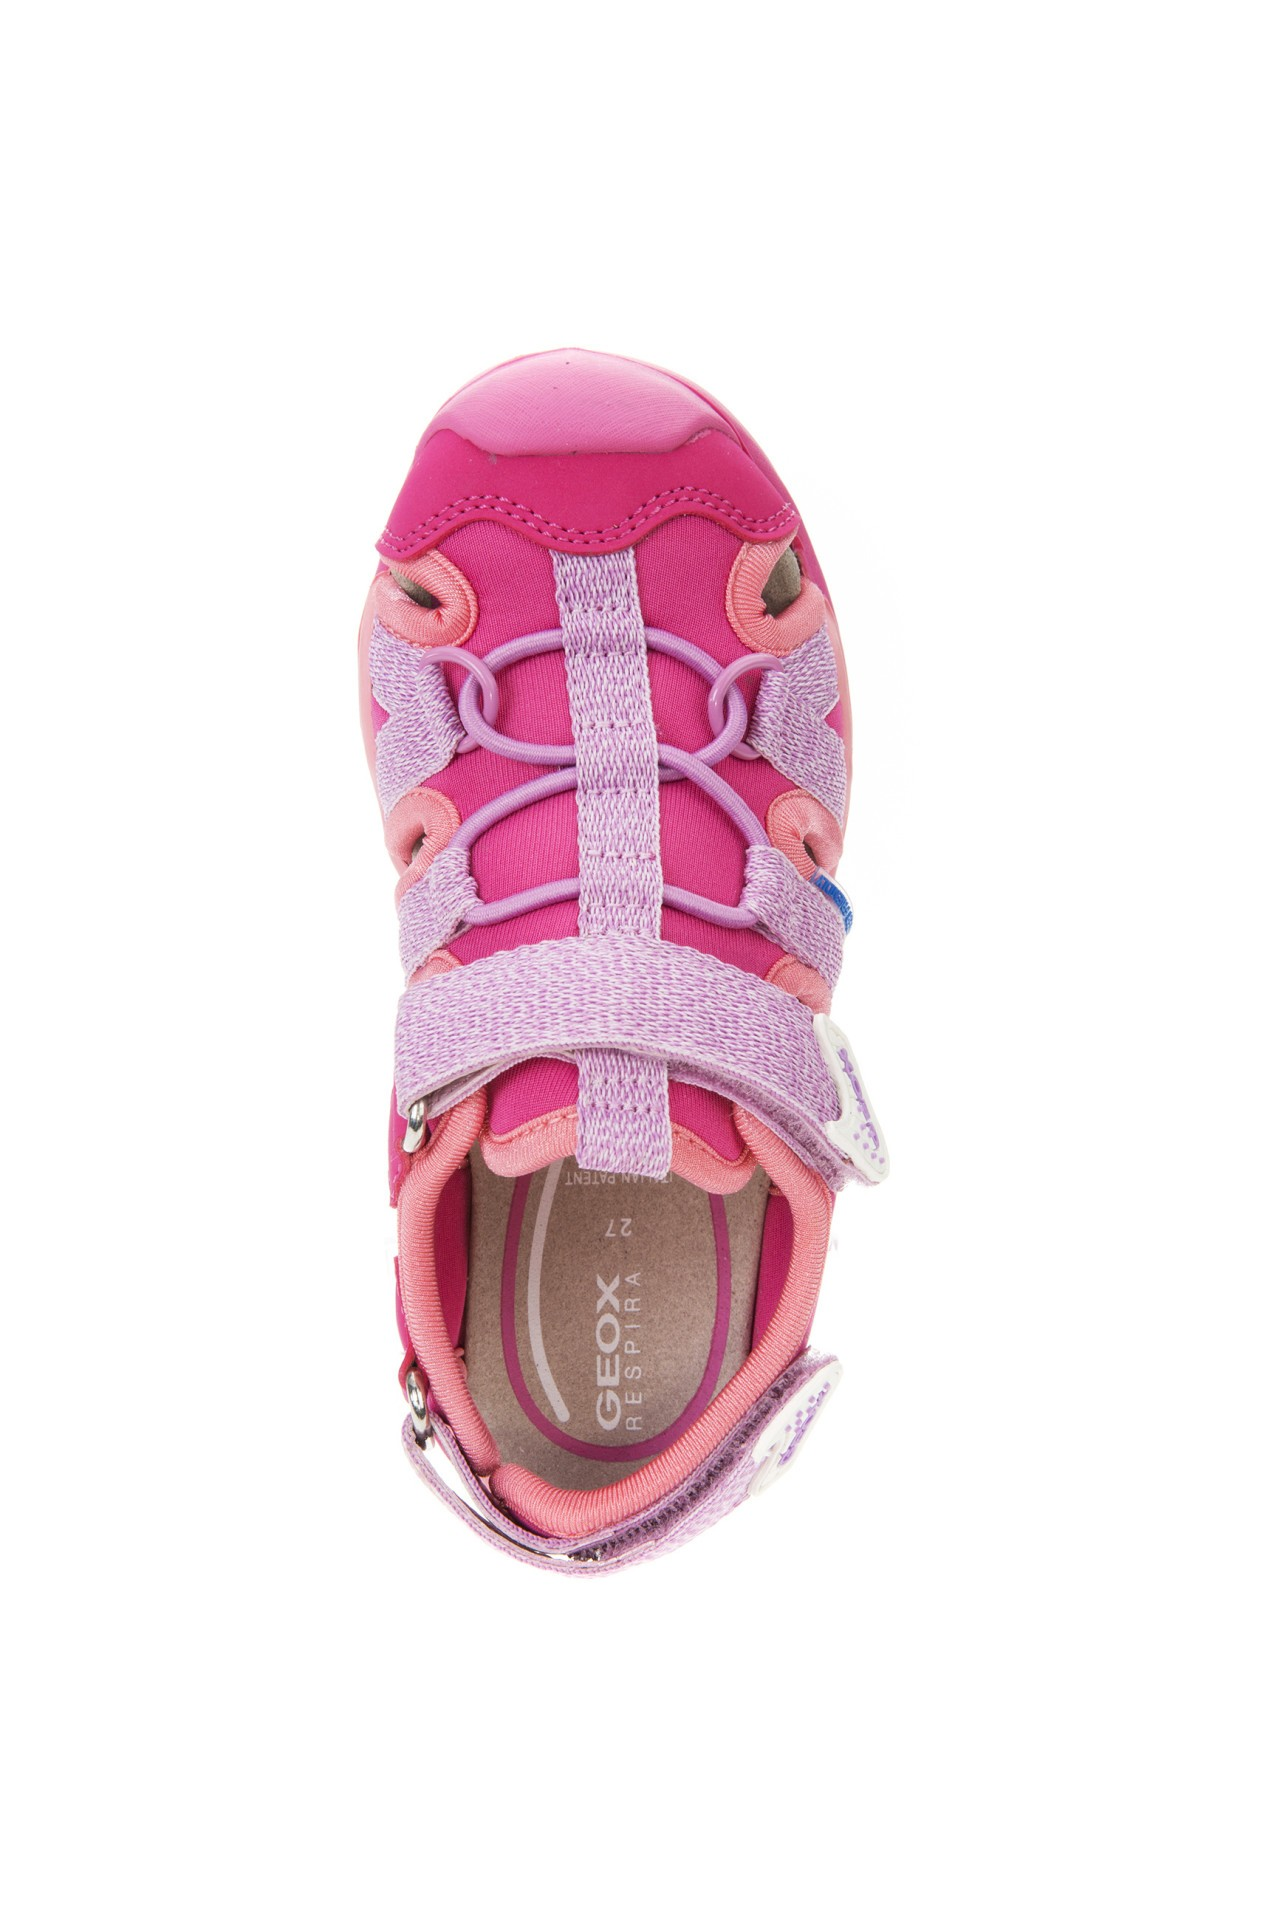 Geox Borealis Lilac Pink Sandals Geox Kids Shoes